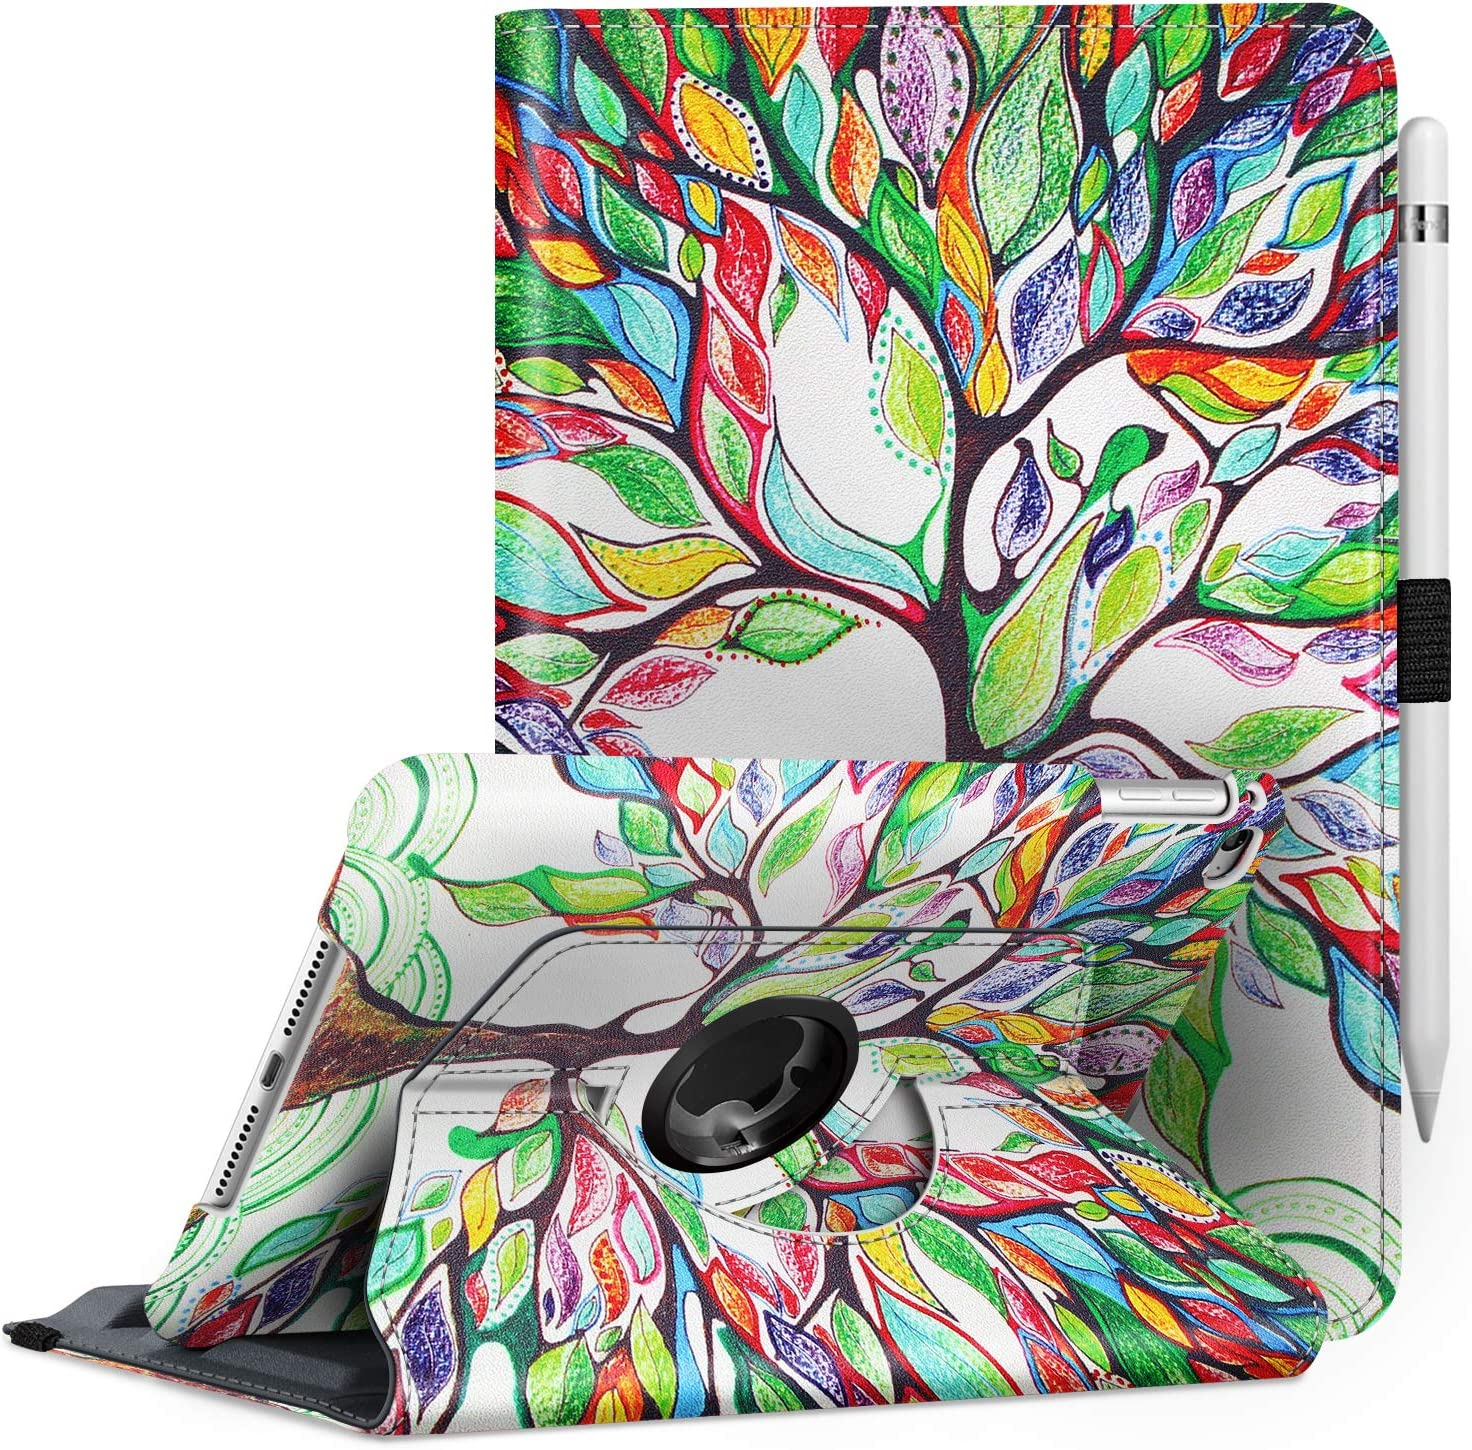 Fintie Rotating Case for iPad Mini 4-360 Degree Rotating Stand Case with Smart Cover Auto Sleep/Wake Feature for iPad Mini 4 (2015 Release), Love Tree